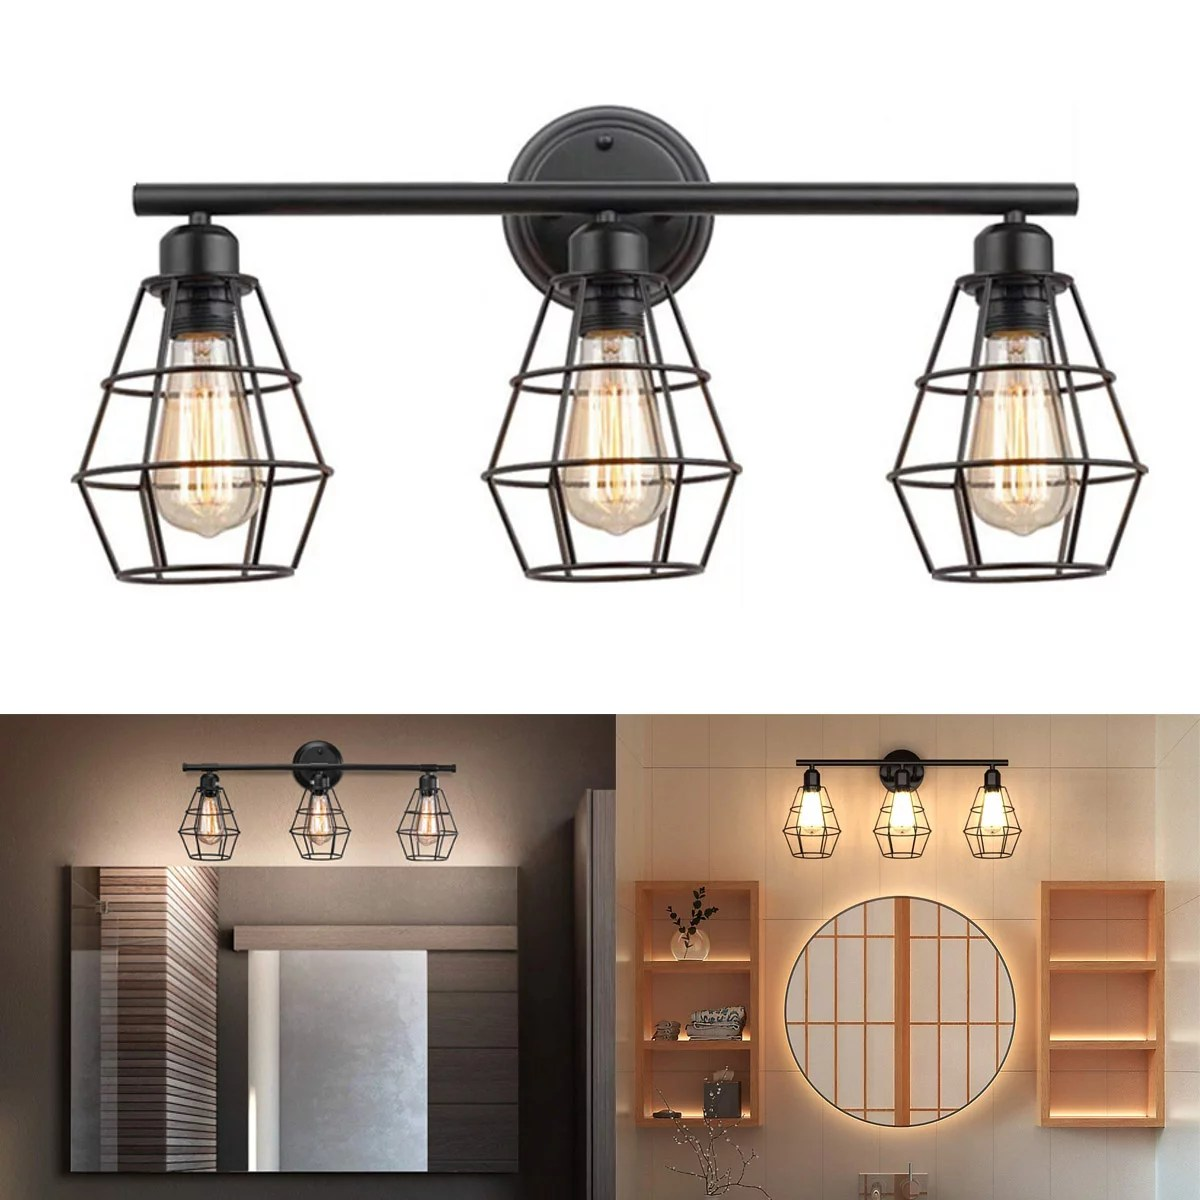 industrial bathroom vanity light 3 lights vintage metal cage wall sconce rustic farmhouse wall light fixture for mirror cabinets bar cafe